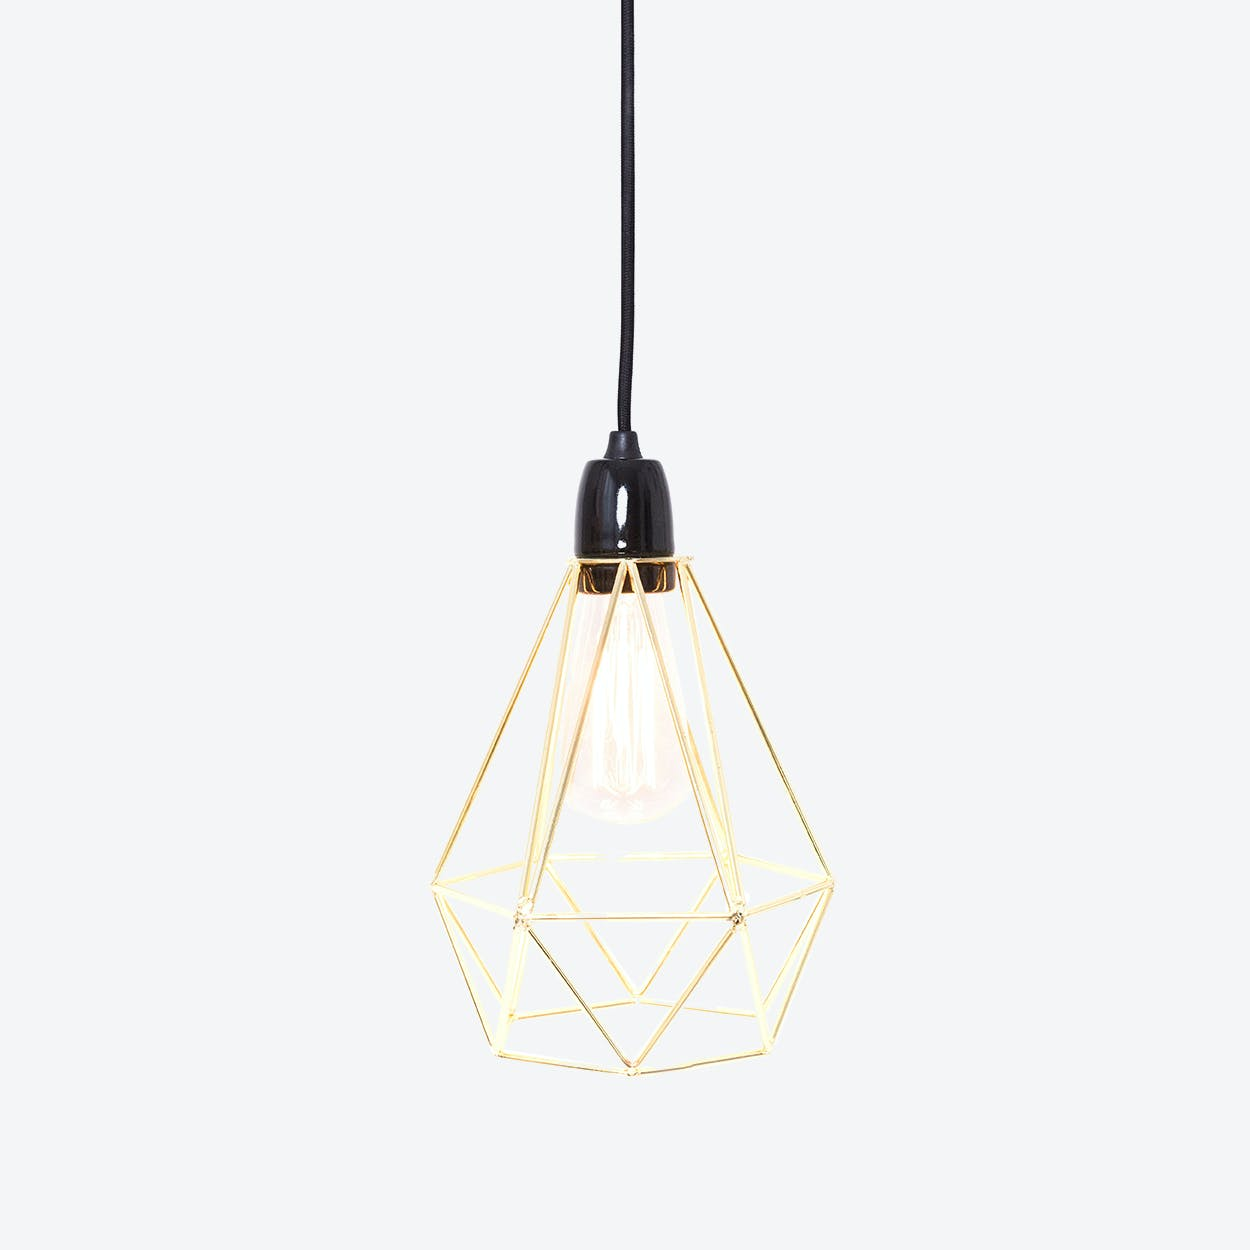 Industrial Pendant Light Diamond in Gold with Black Cord